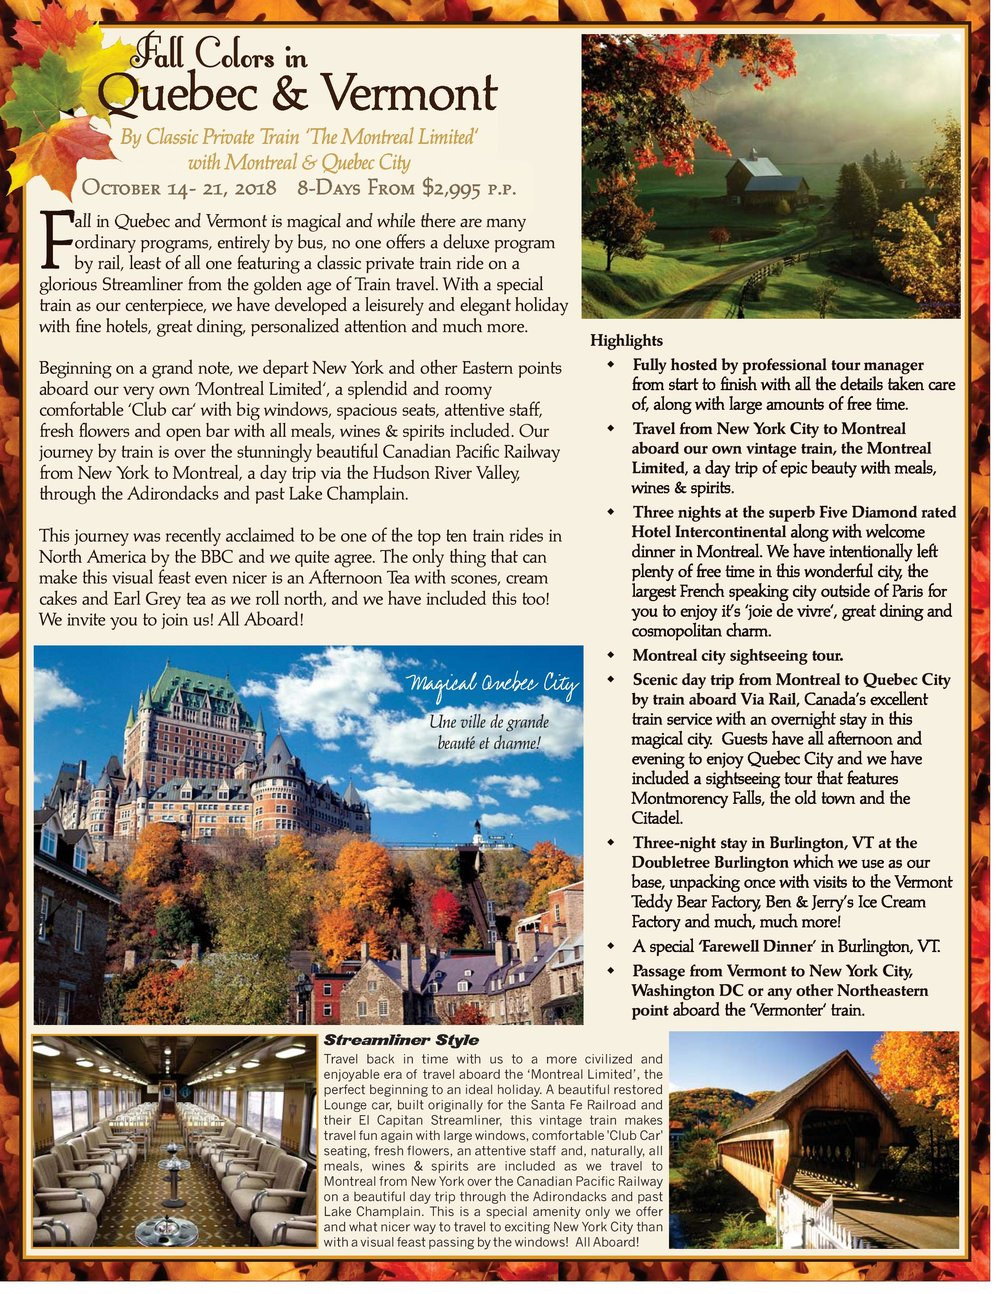 2018 Fall Colors in Quebec & Vermont - Email copy-page-001.jpg